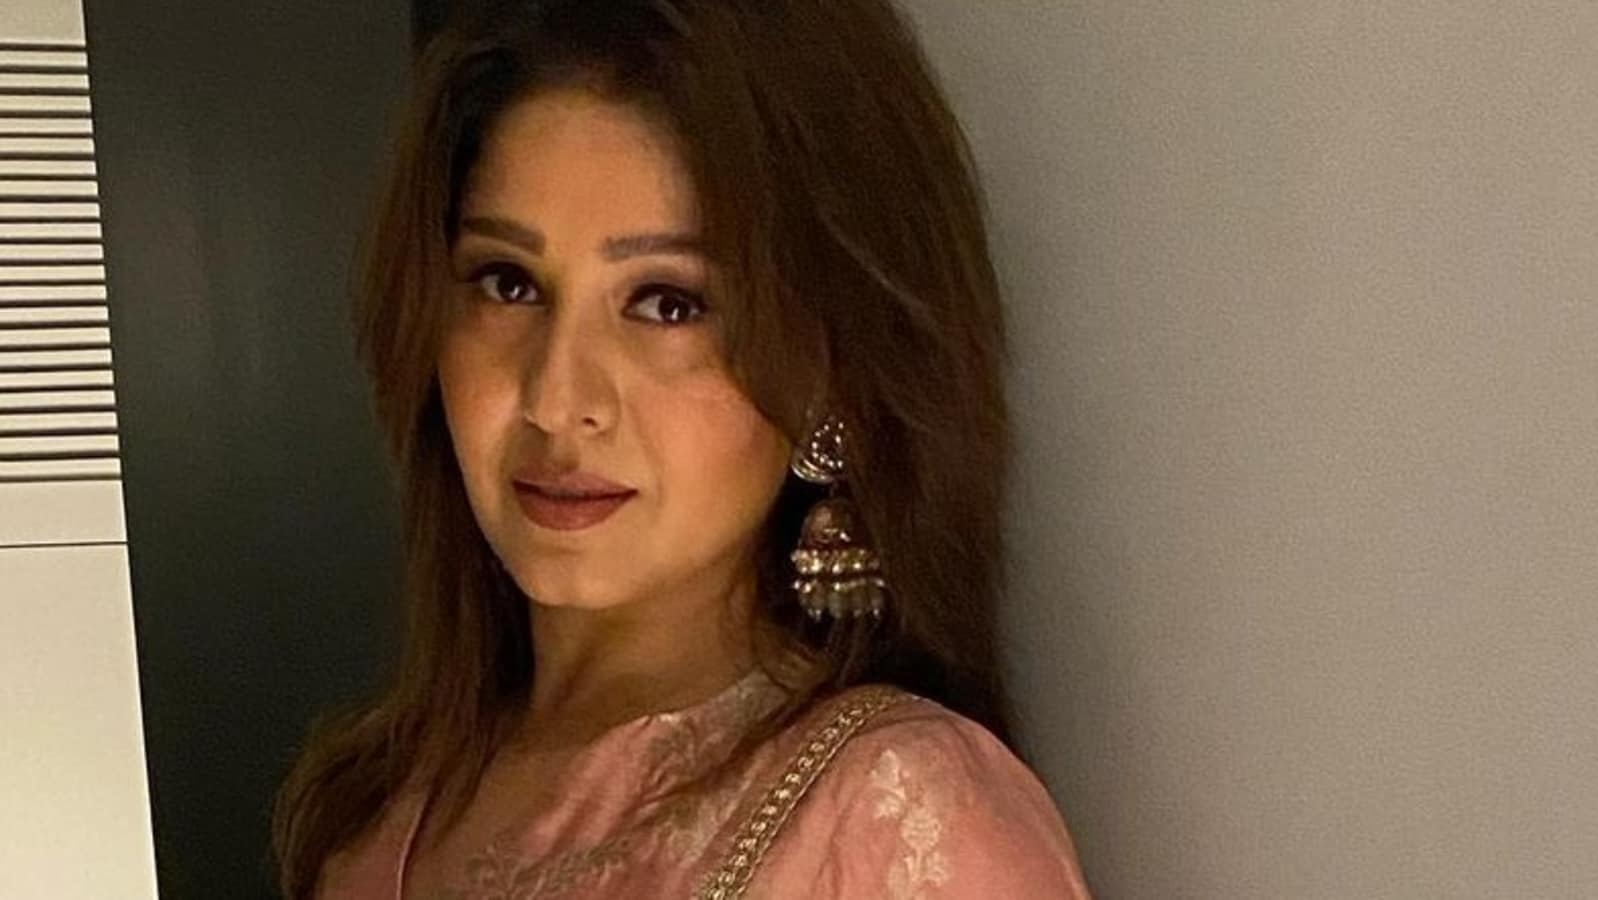 Sunidhi Chauhan says a music director once told her that her singing is 'like a man's voice on an actress' - Hindustan Times